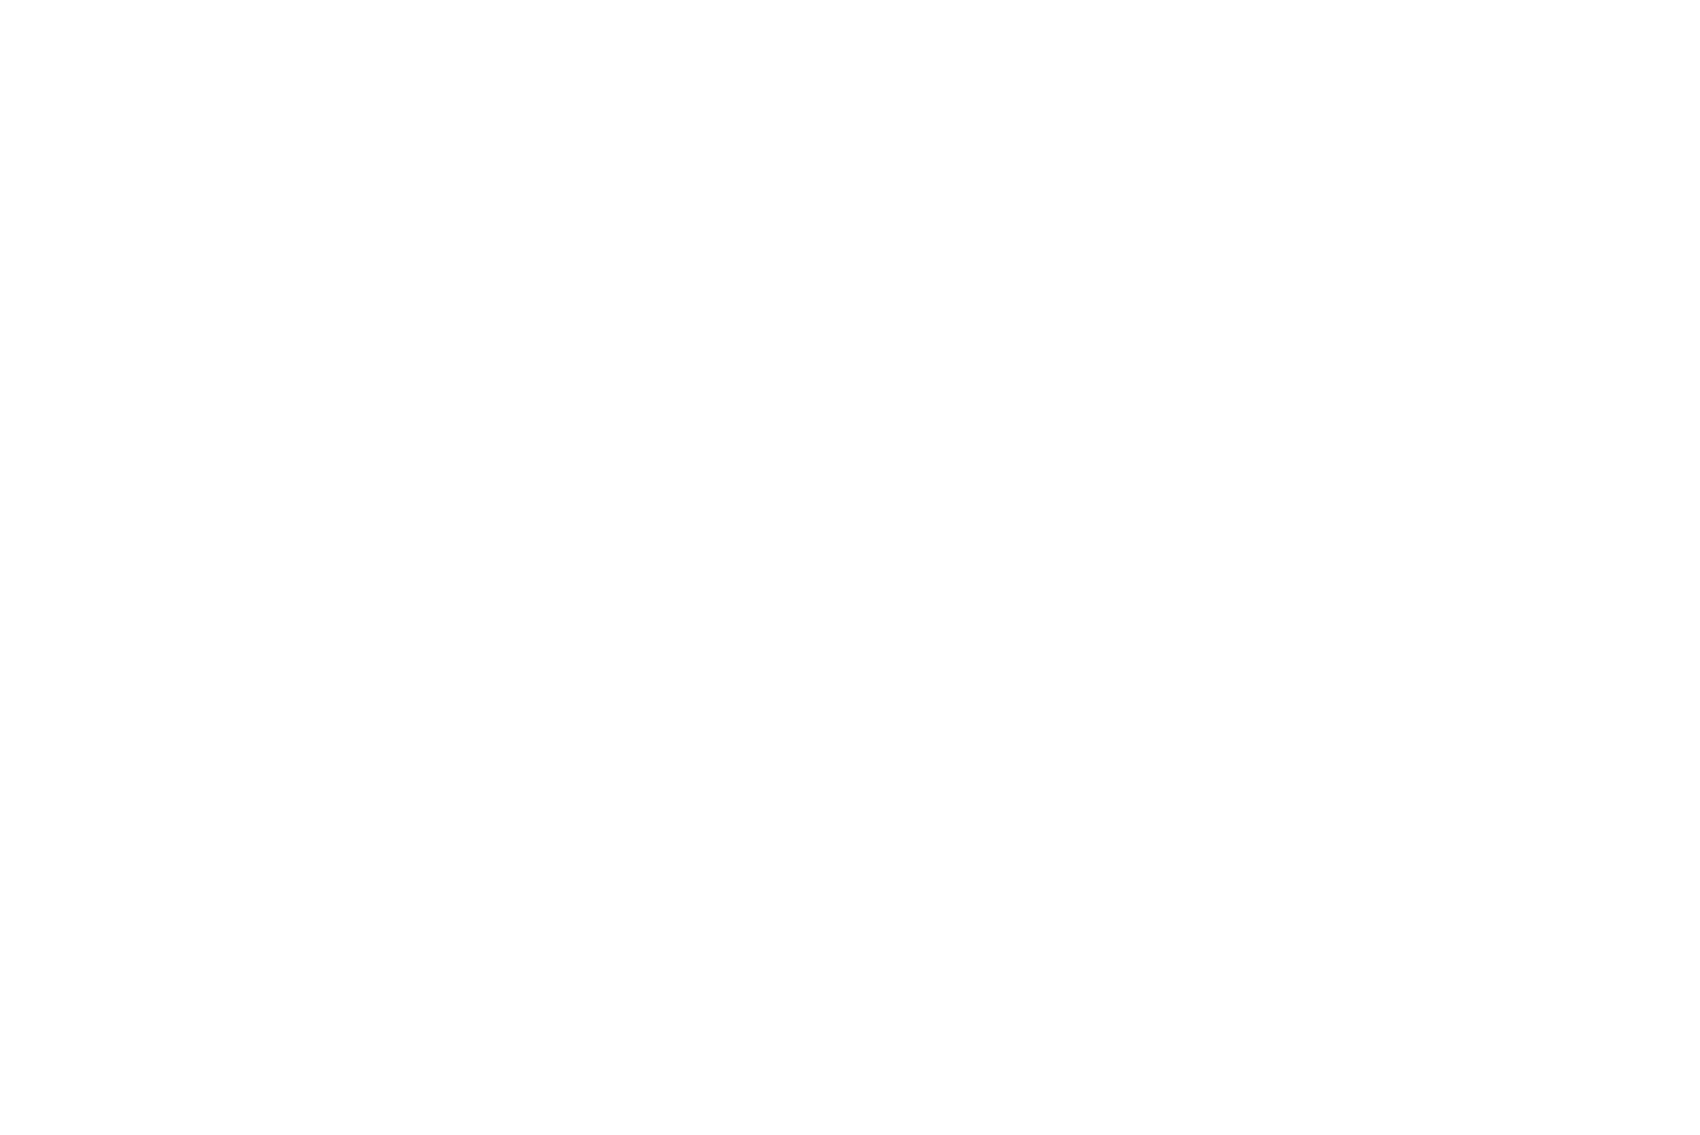 Meridian Cube Packing